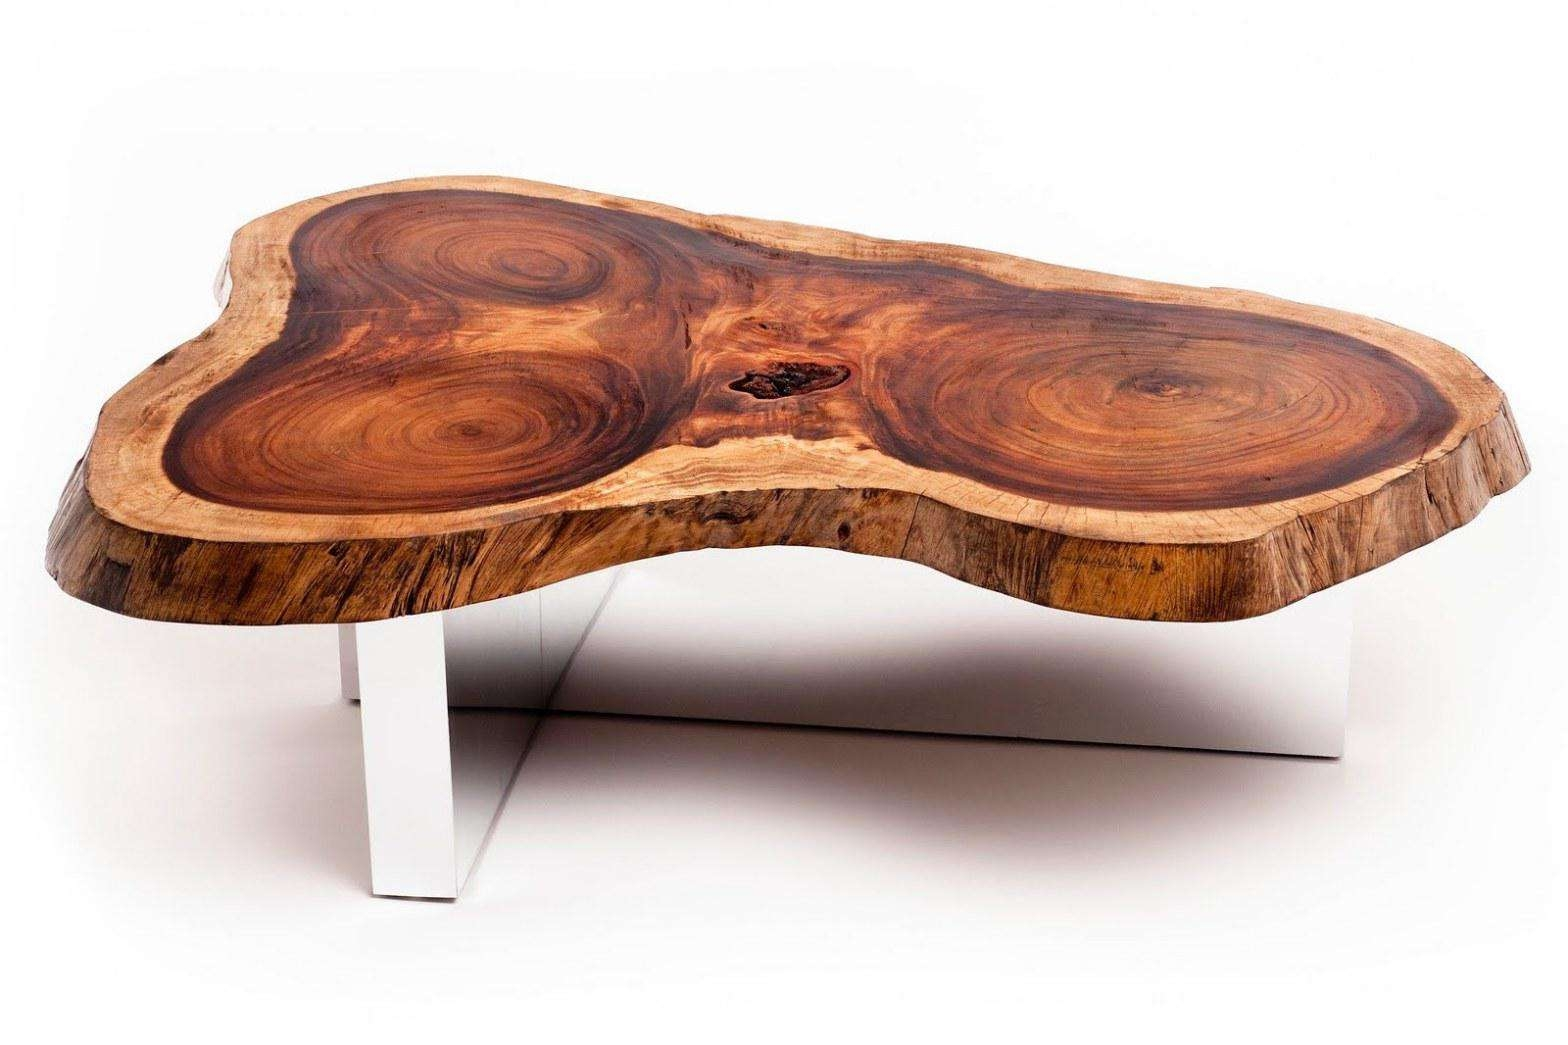 Coffee Tables : Natural Wood Slab Coffee Table Tree Round And With Regard To Favorite High Quality Coffee Tables (View 12 of 20)